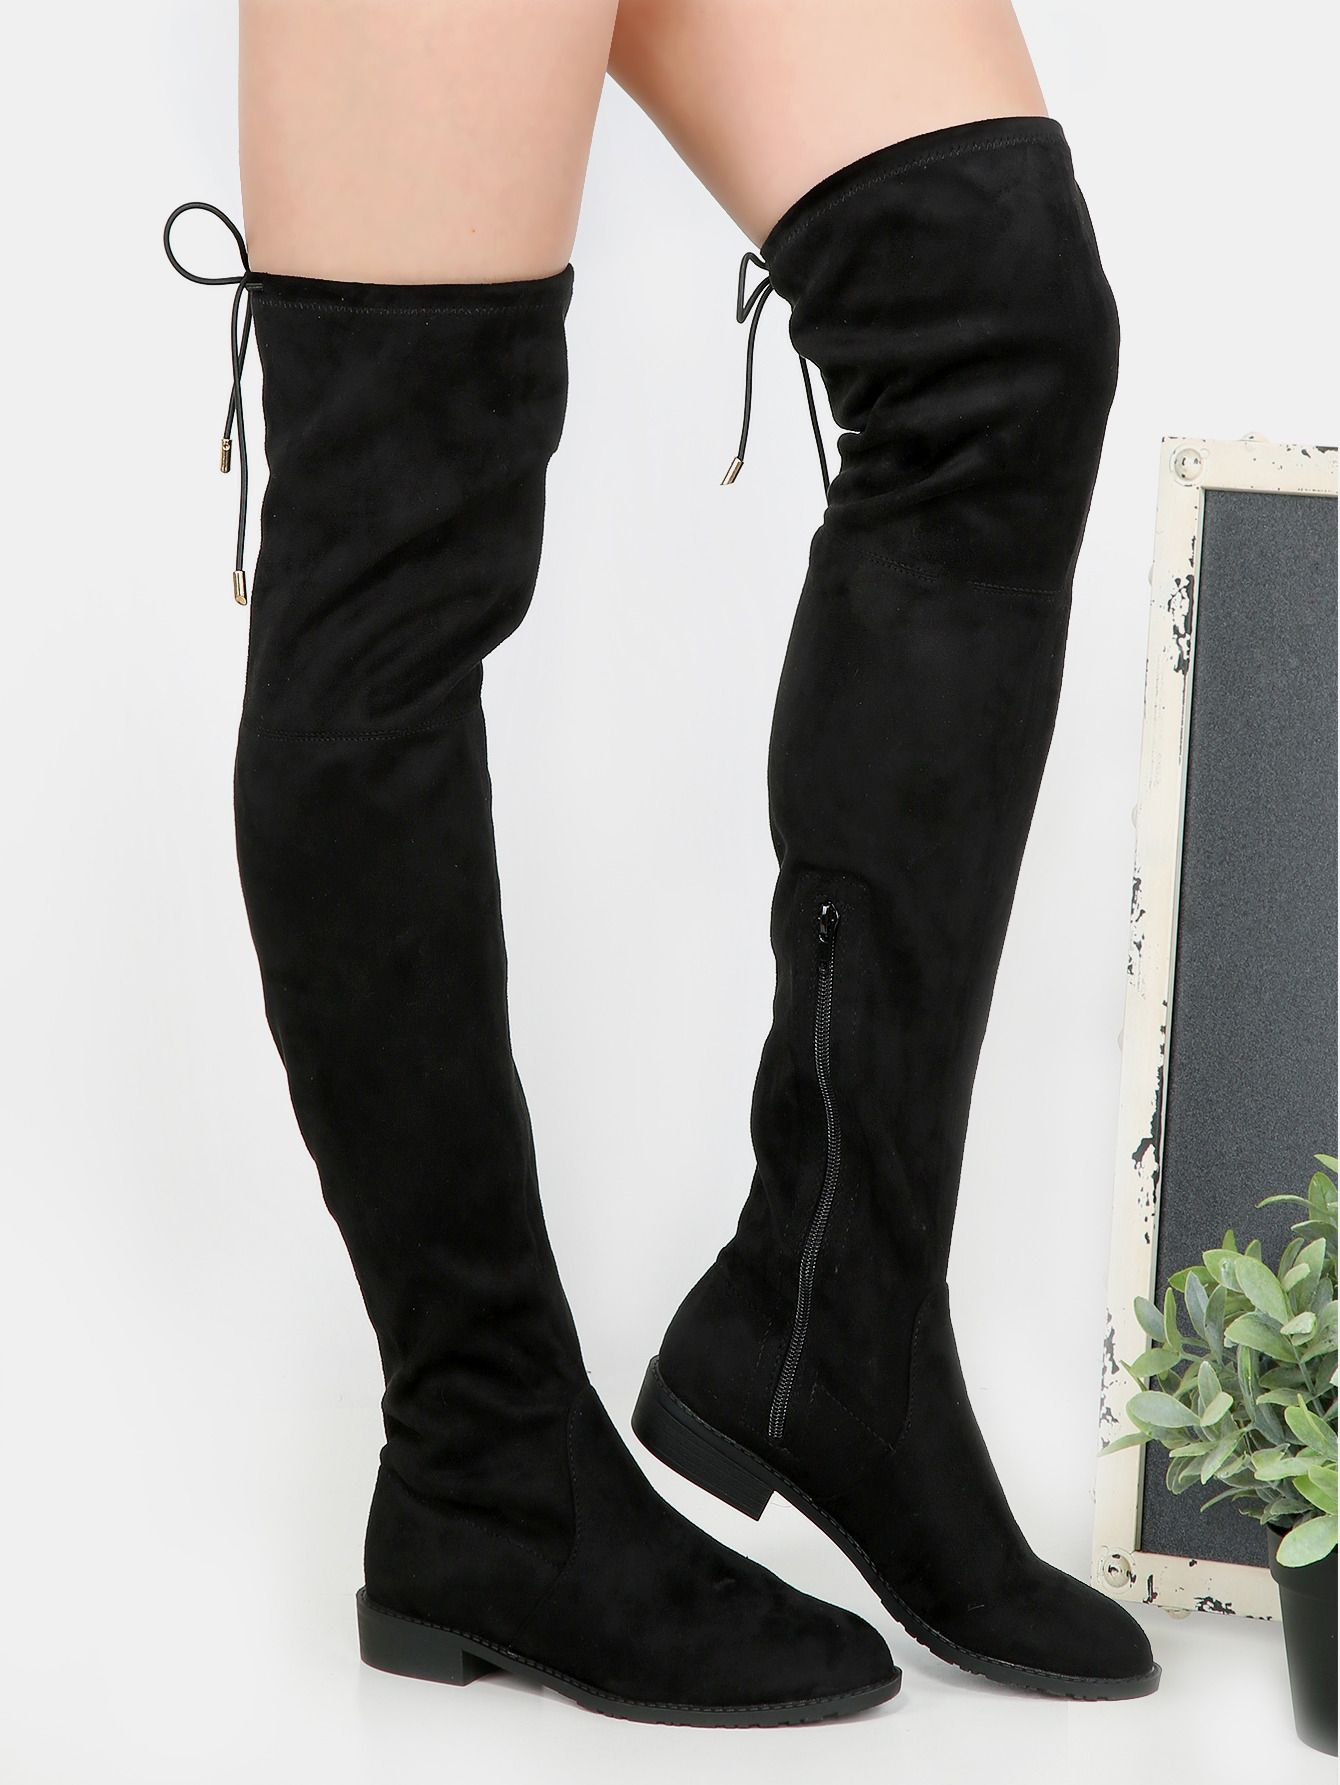 70fec86a1dc Online shopping for Flat Heel Thigh High Boots BLACK from a great selection  of women s fashion clothing   more at MakeMeChic.COM.